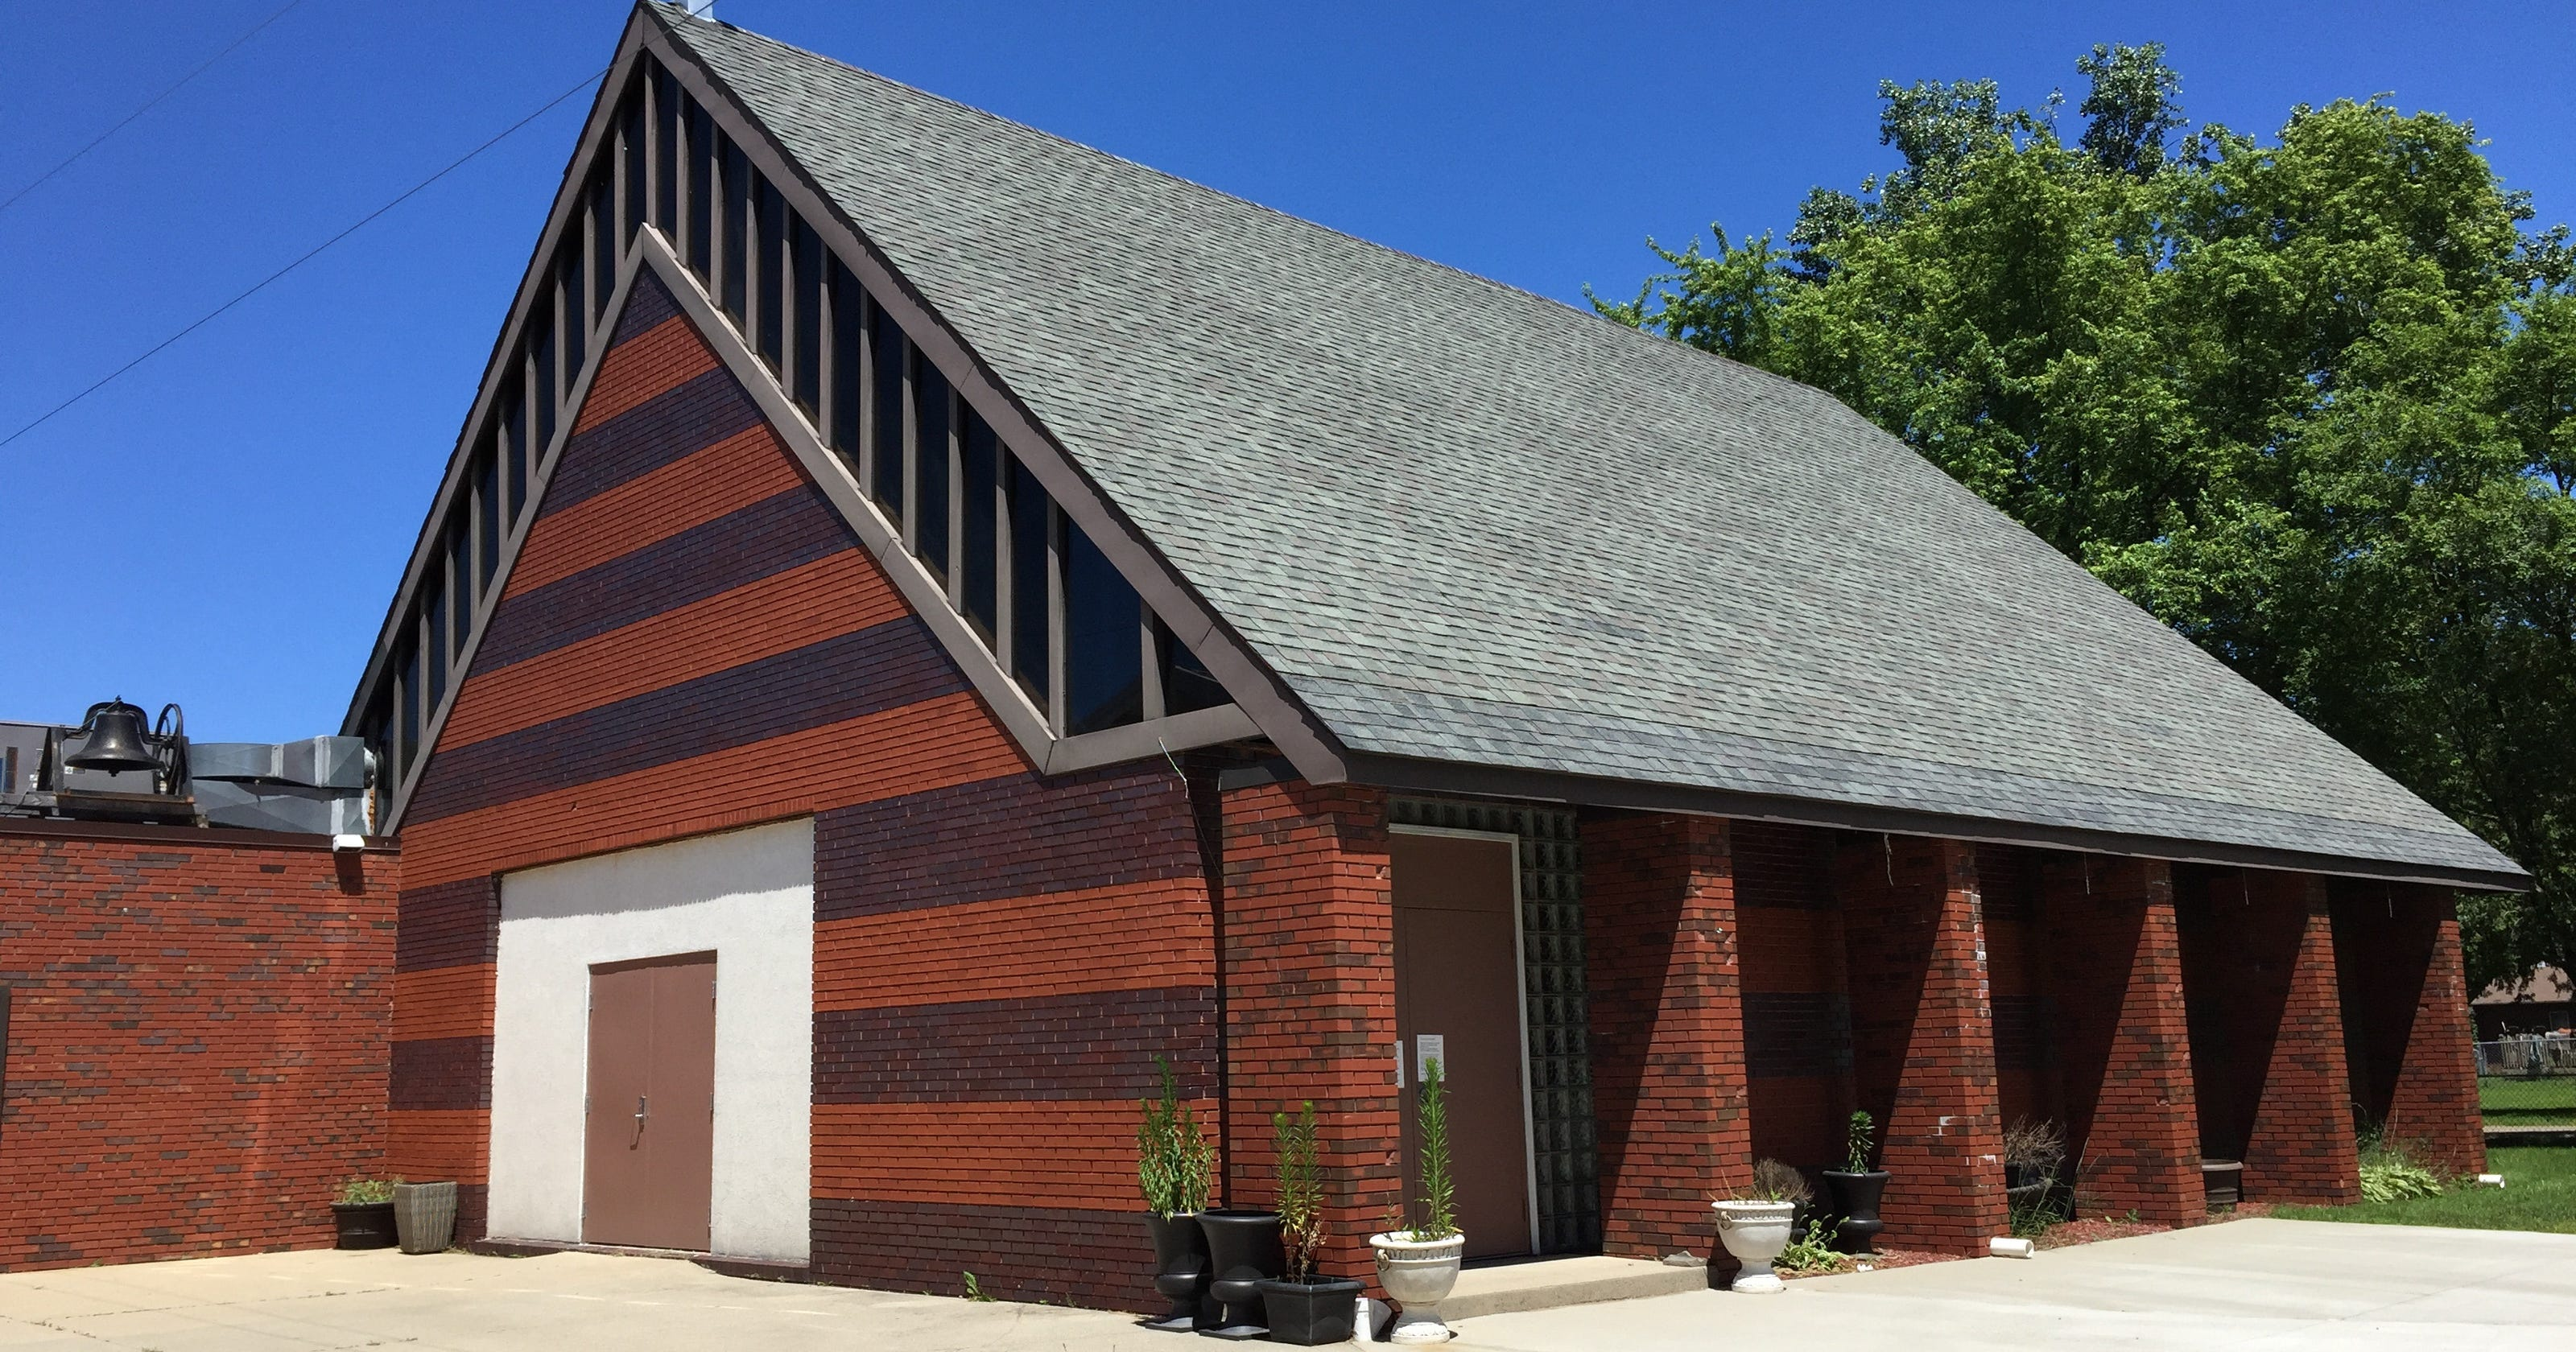 Greek Festival Will Help Church Pay For A New Roof